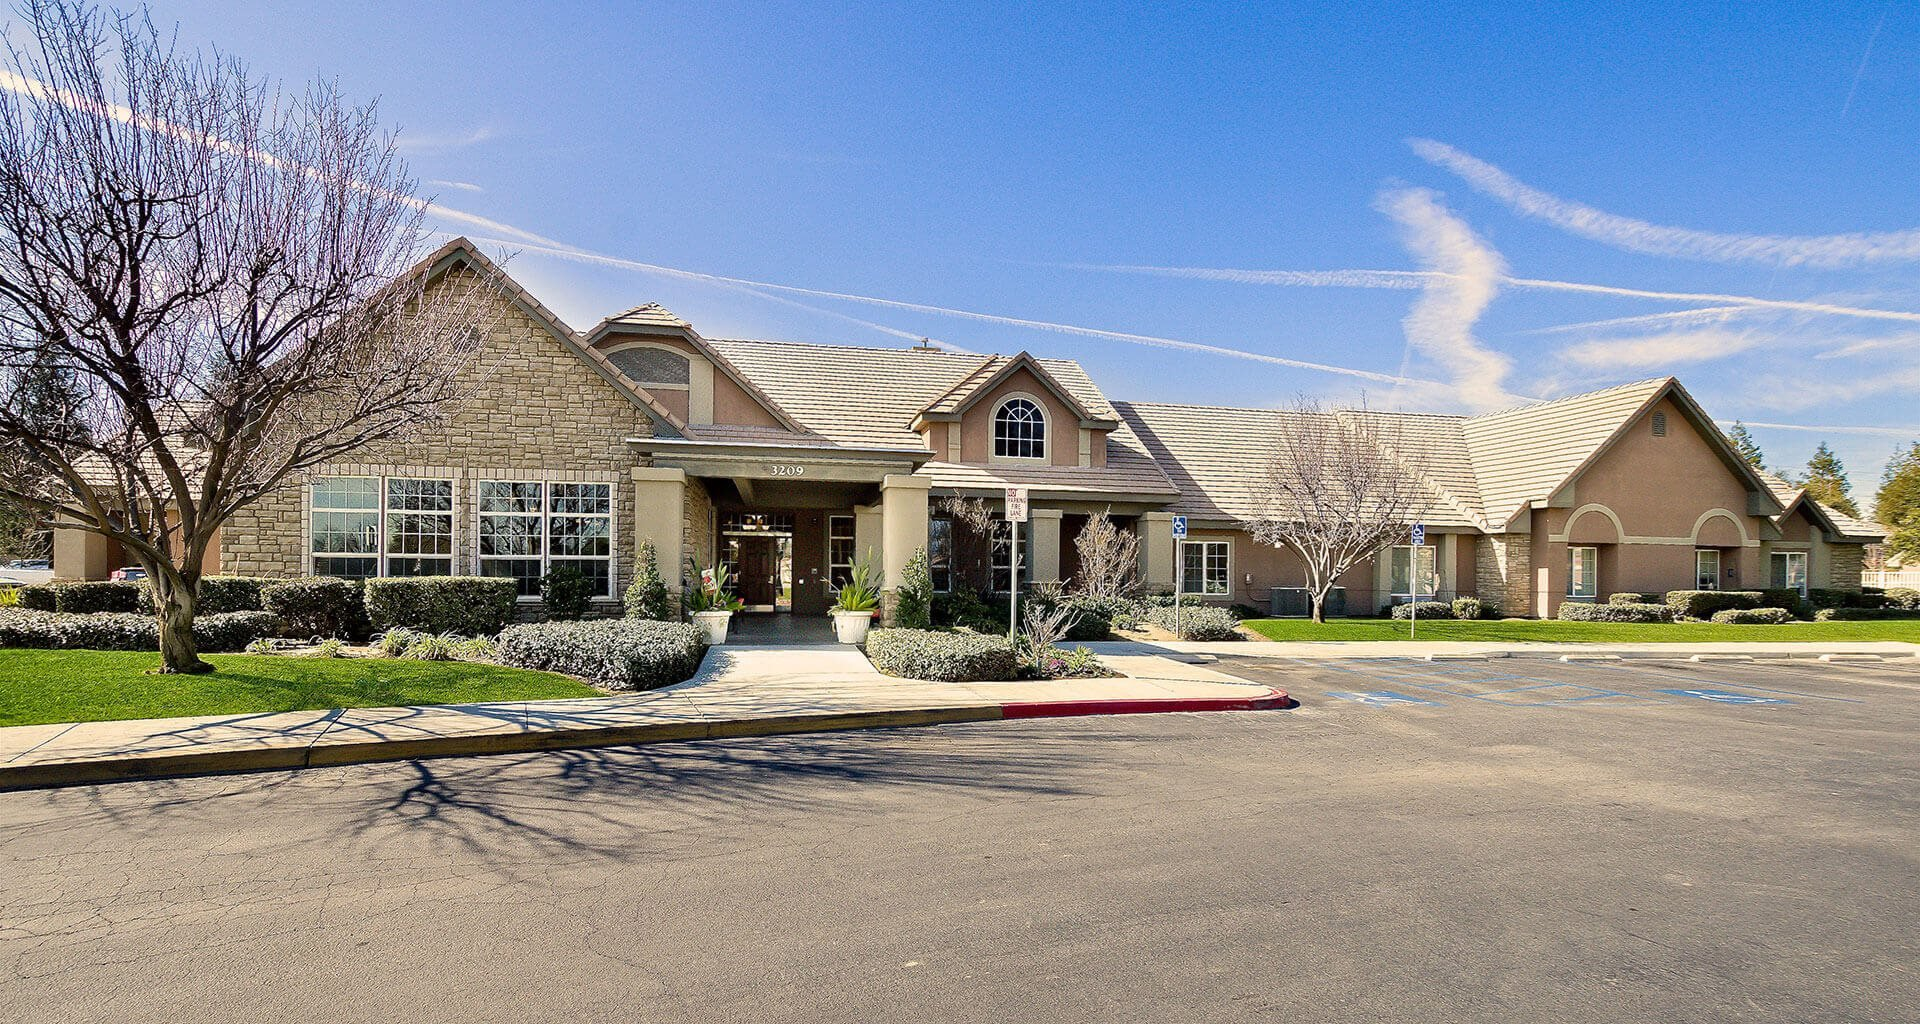 Spacious Outside Area With Ample Parking at Pacifica Senior Living Bakersfield, California